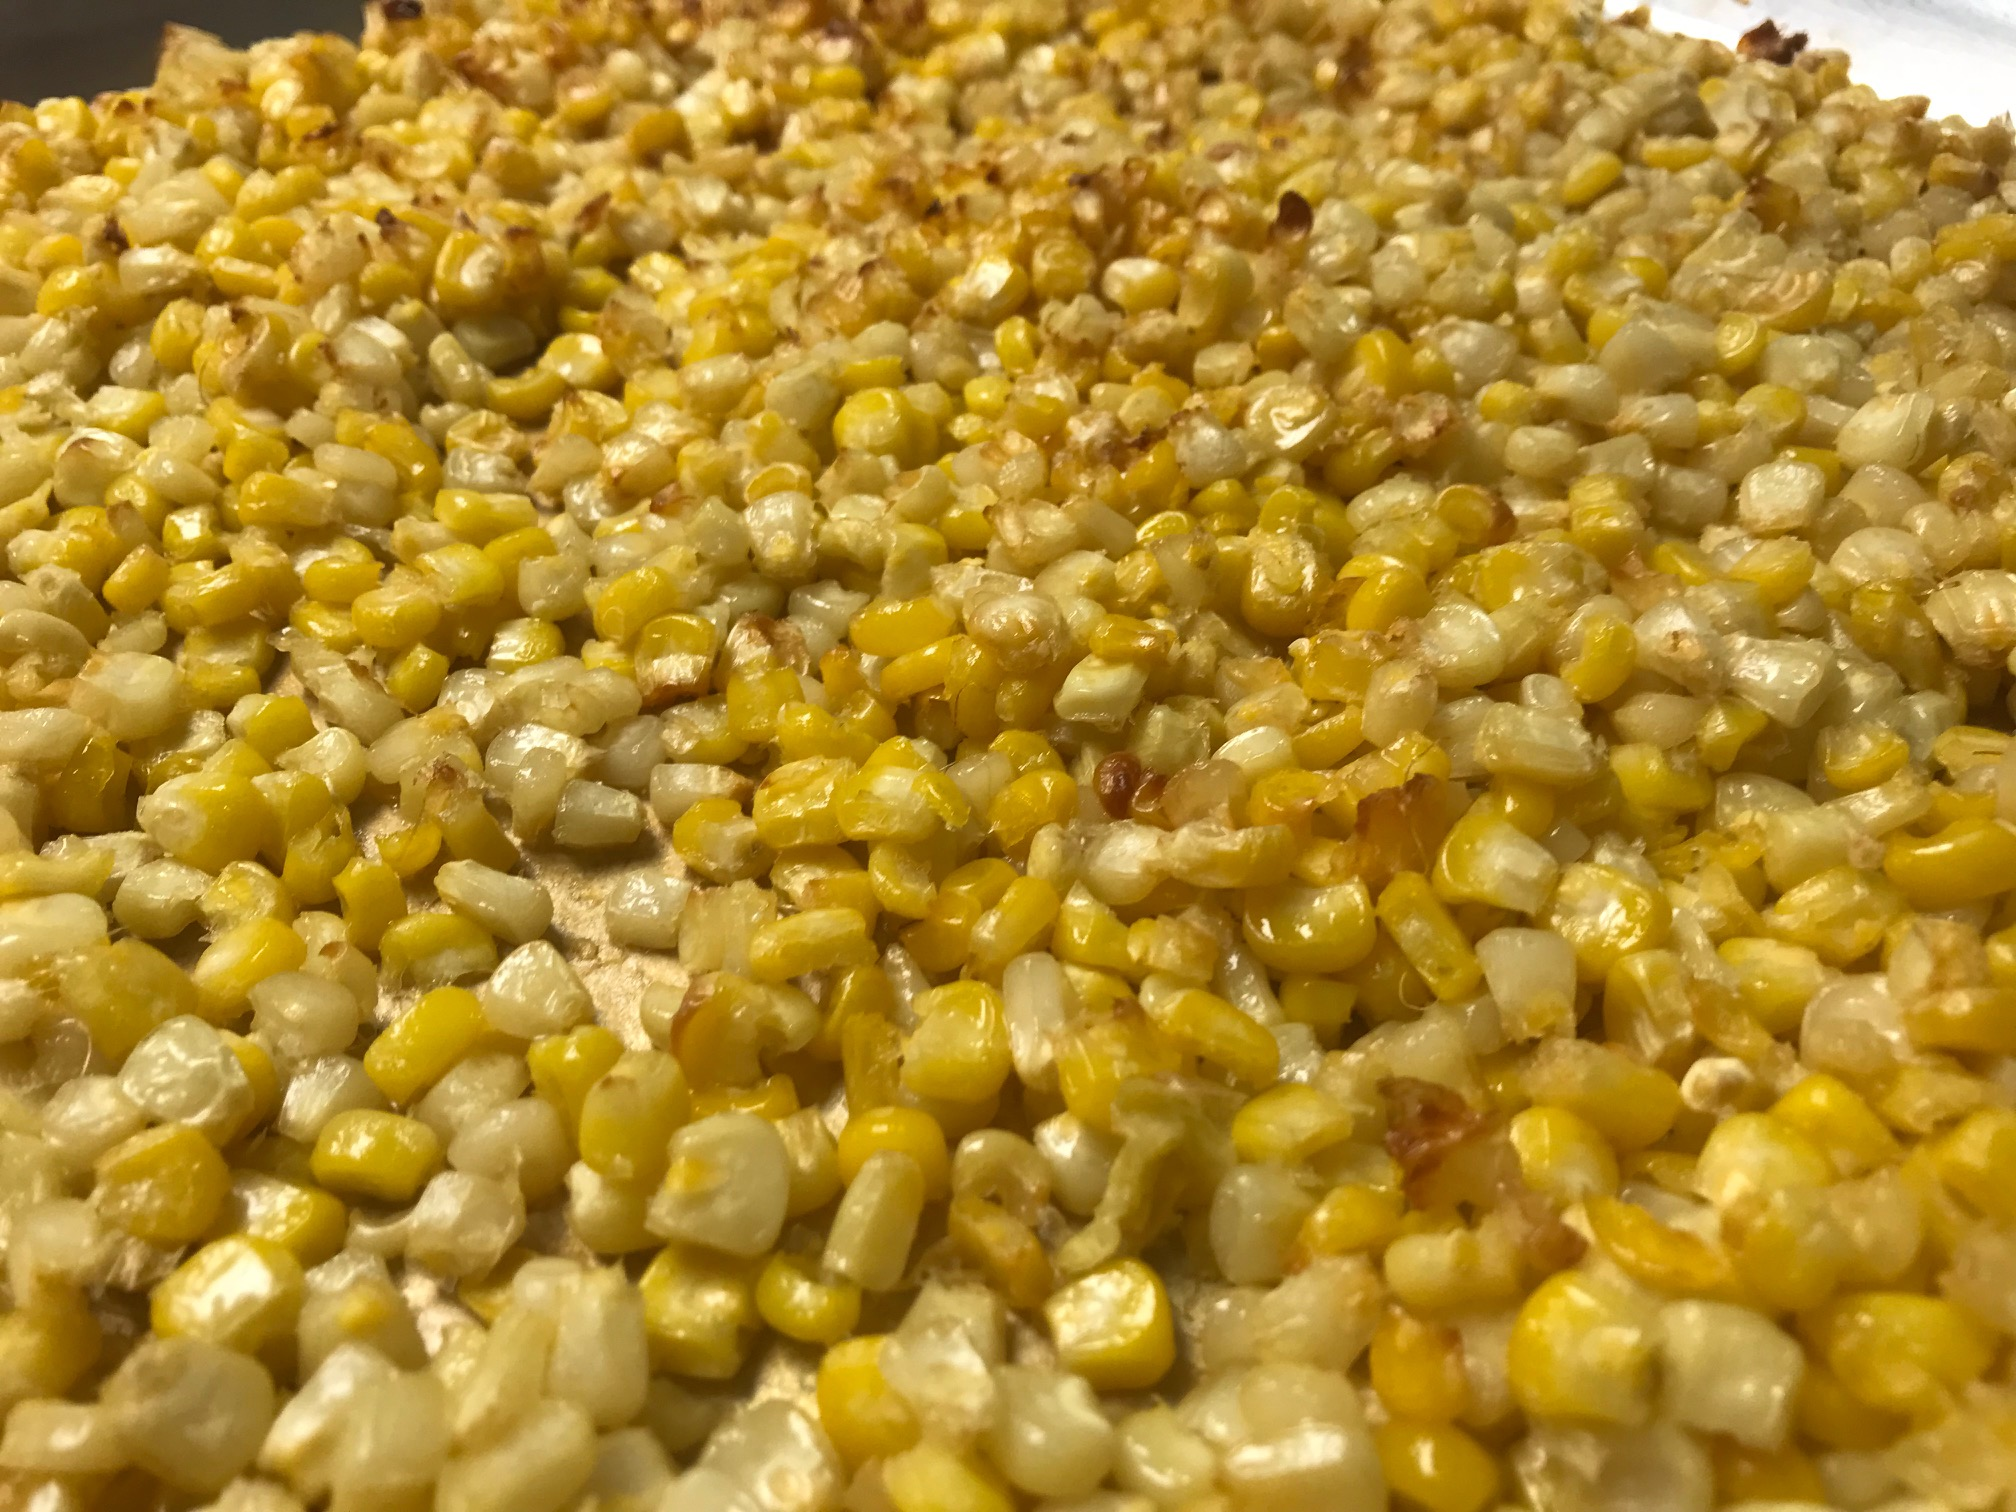 Yellow Corn roasted